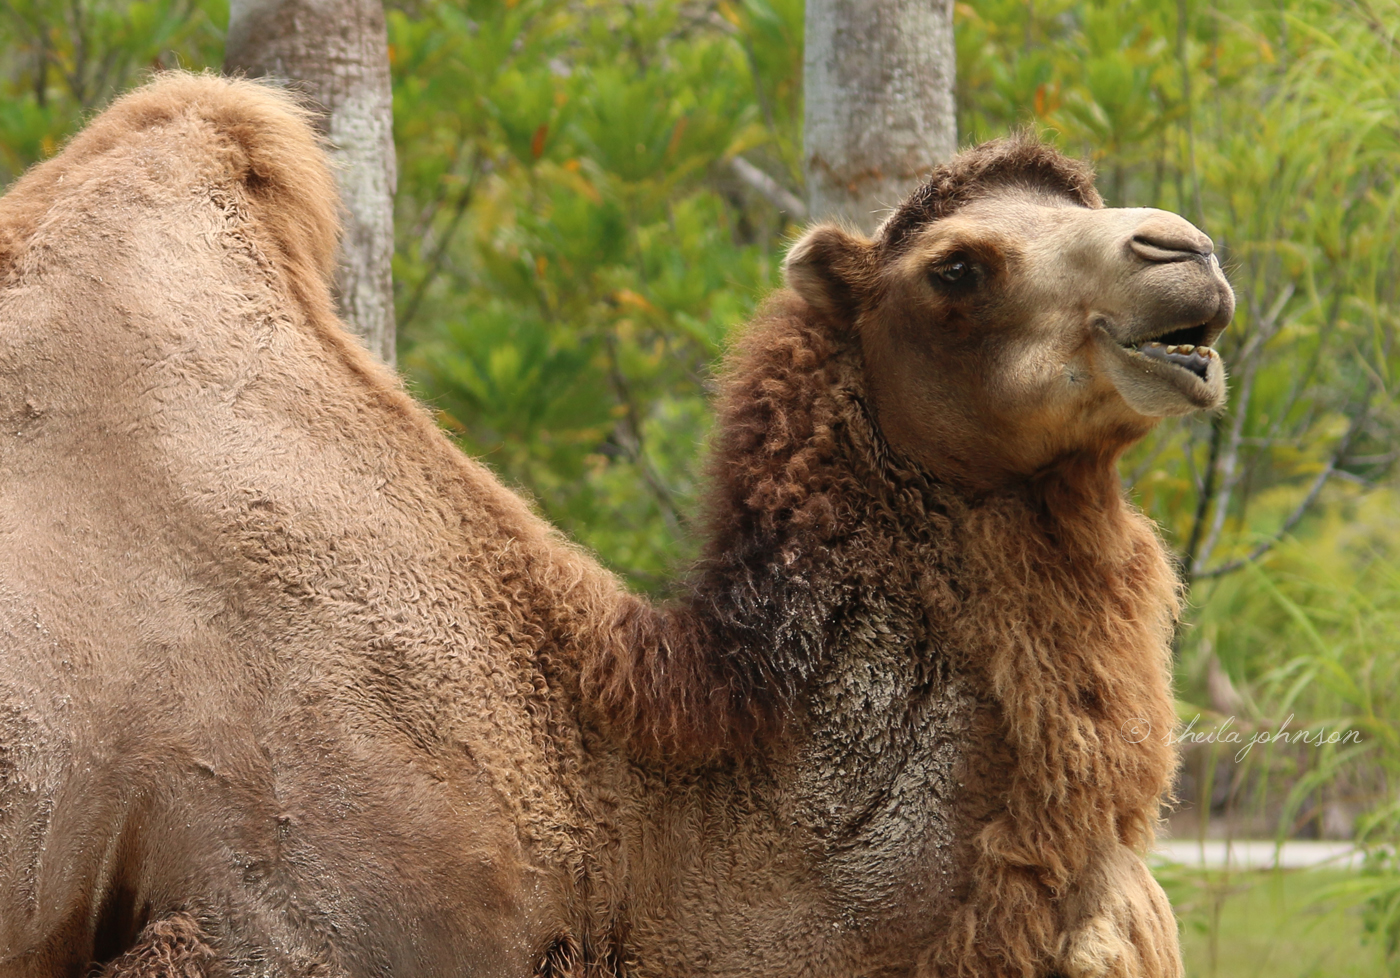 This Bactrian Camel has two humps, though you can only see one in the photo, which store fat. The camel metabolizes that fat after long periods without food. Someone told me way to remember which camel is which: Dromedary starts with D and they have one hump; Bactrian starts with B and they have two humps. You're welcome.